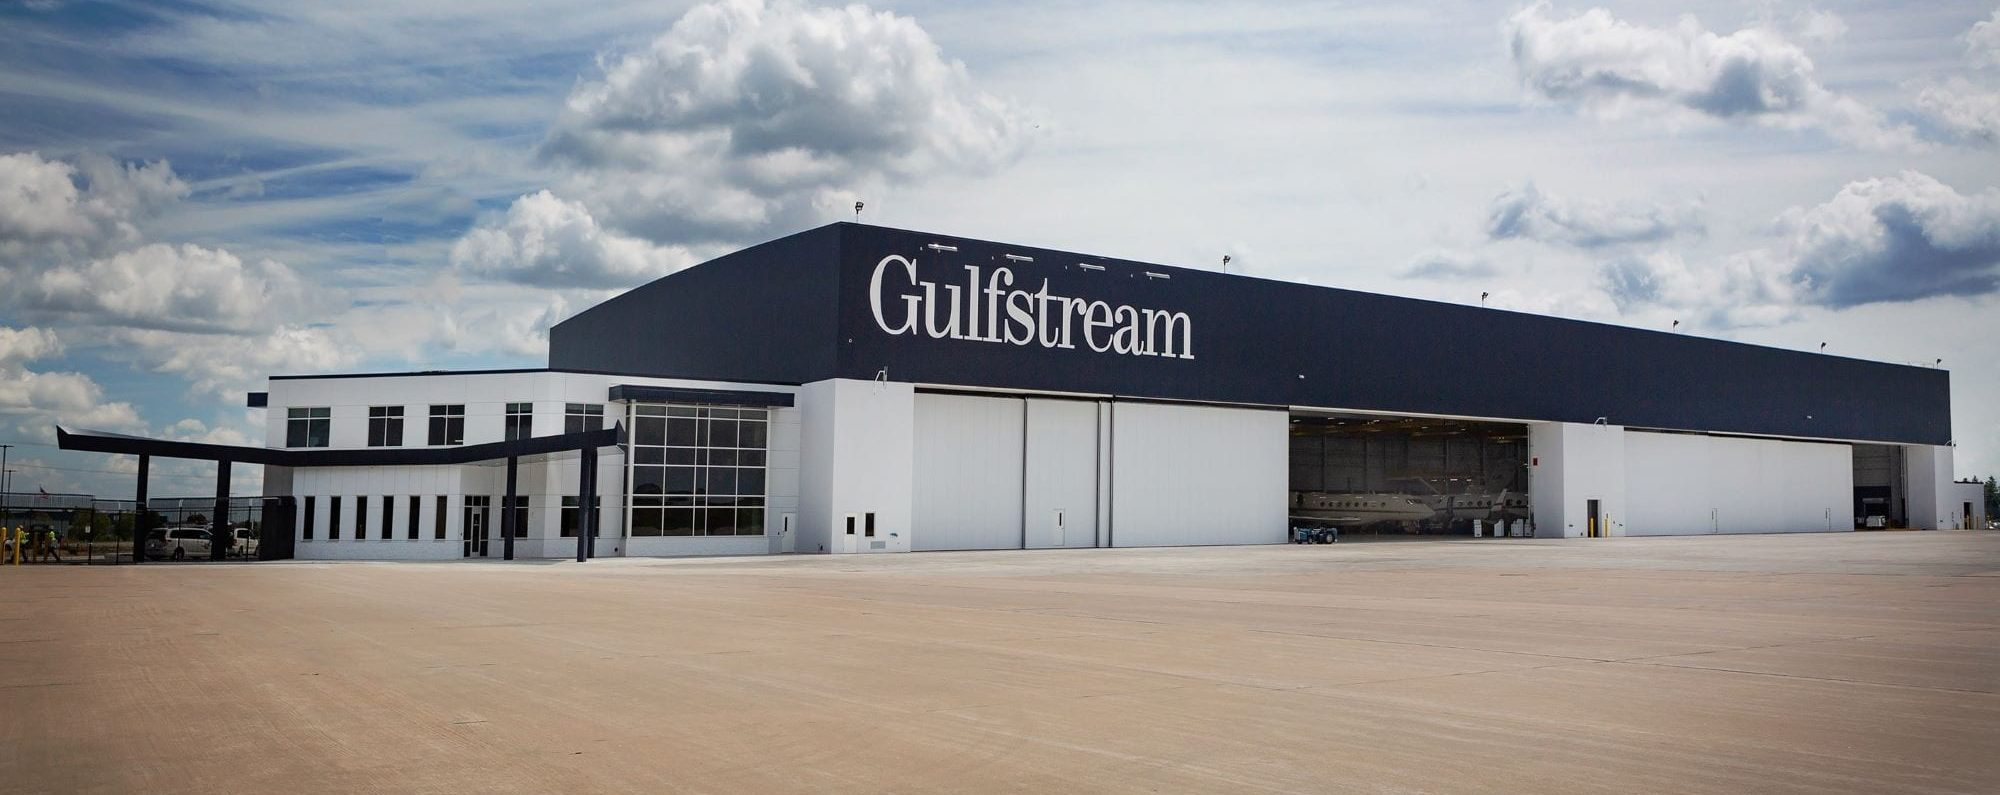 New Gulfstream MRO Facility - Appleton, WI